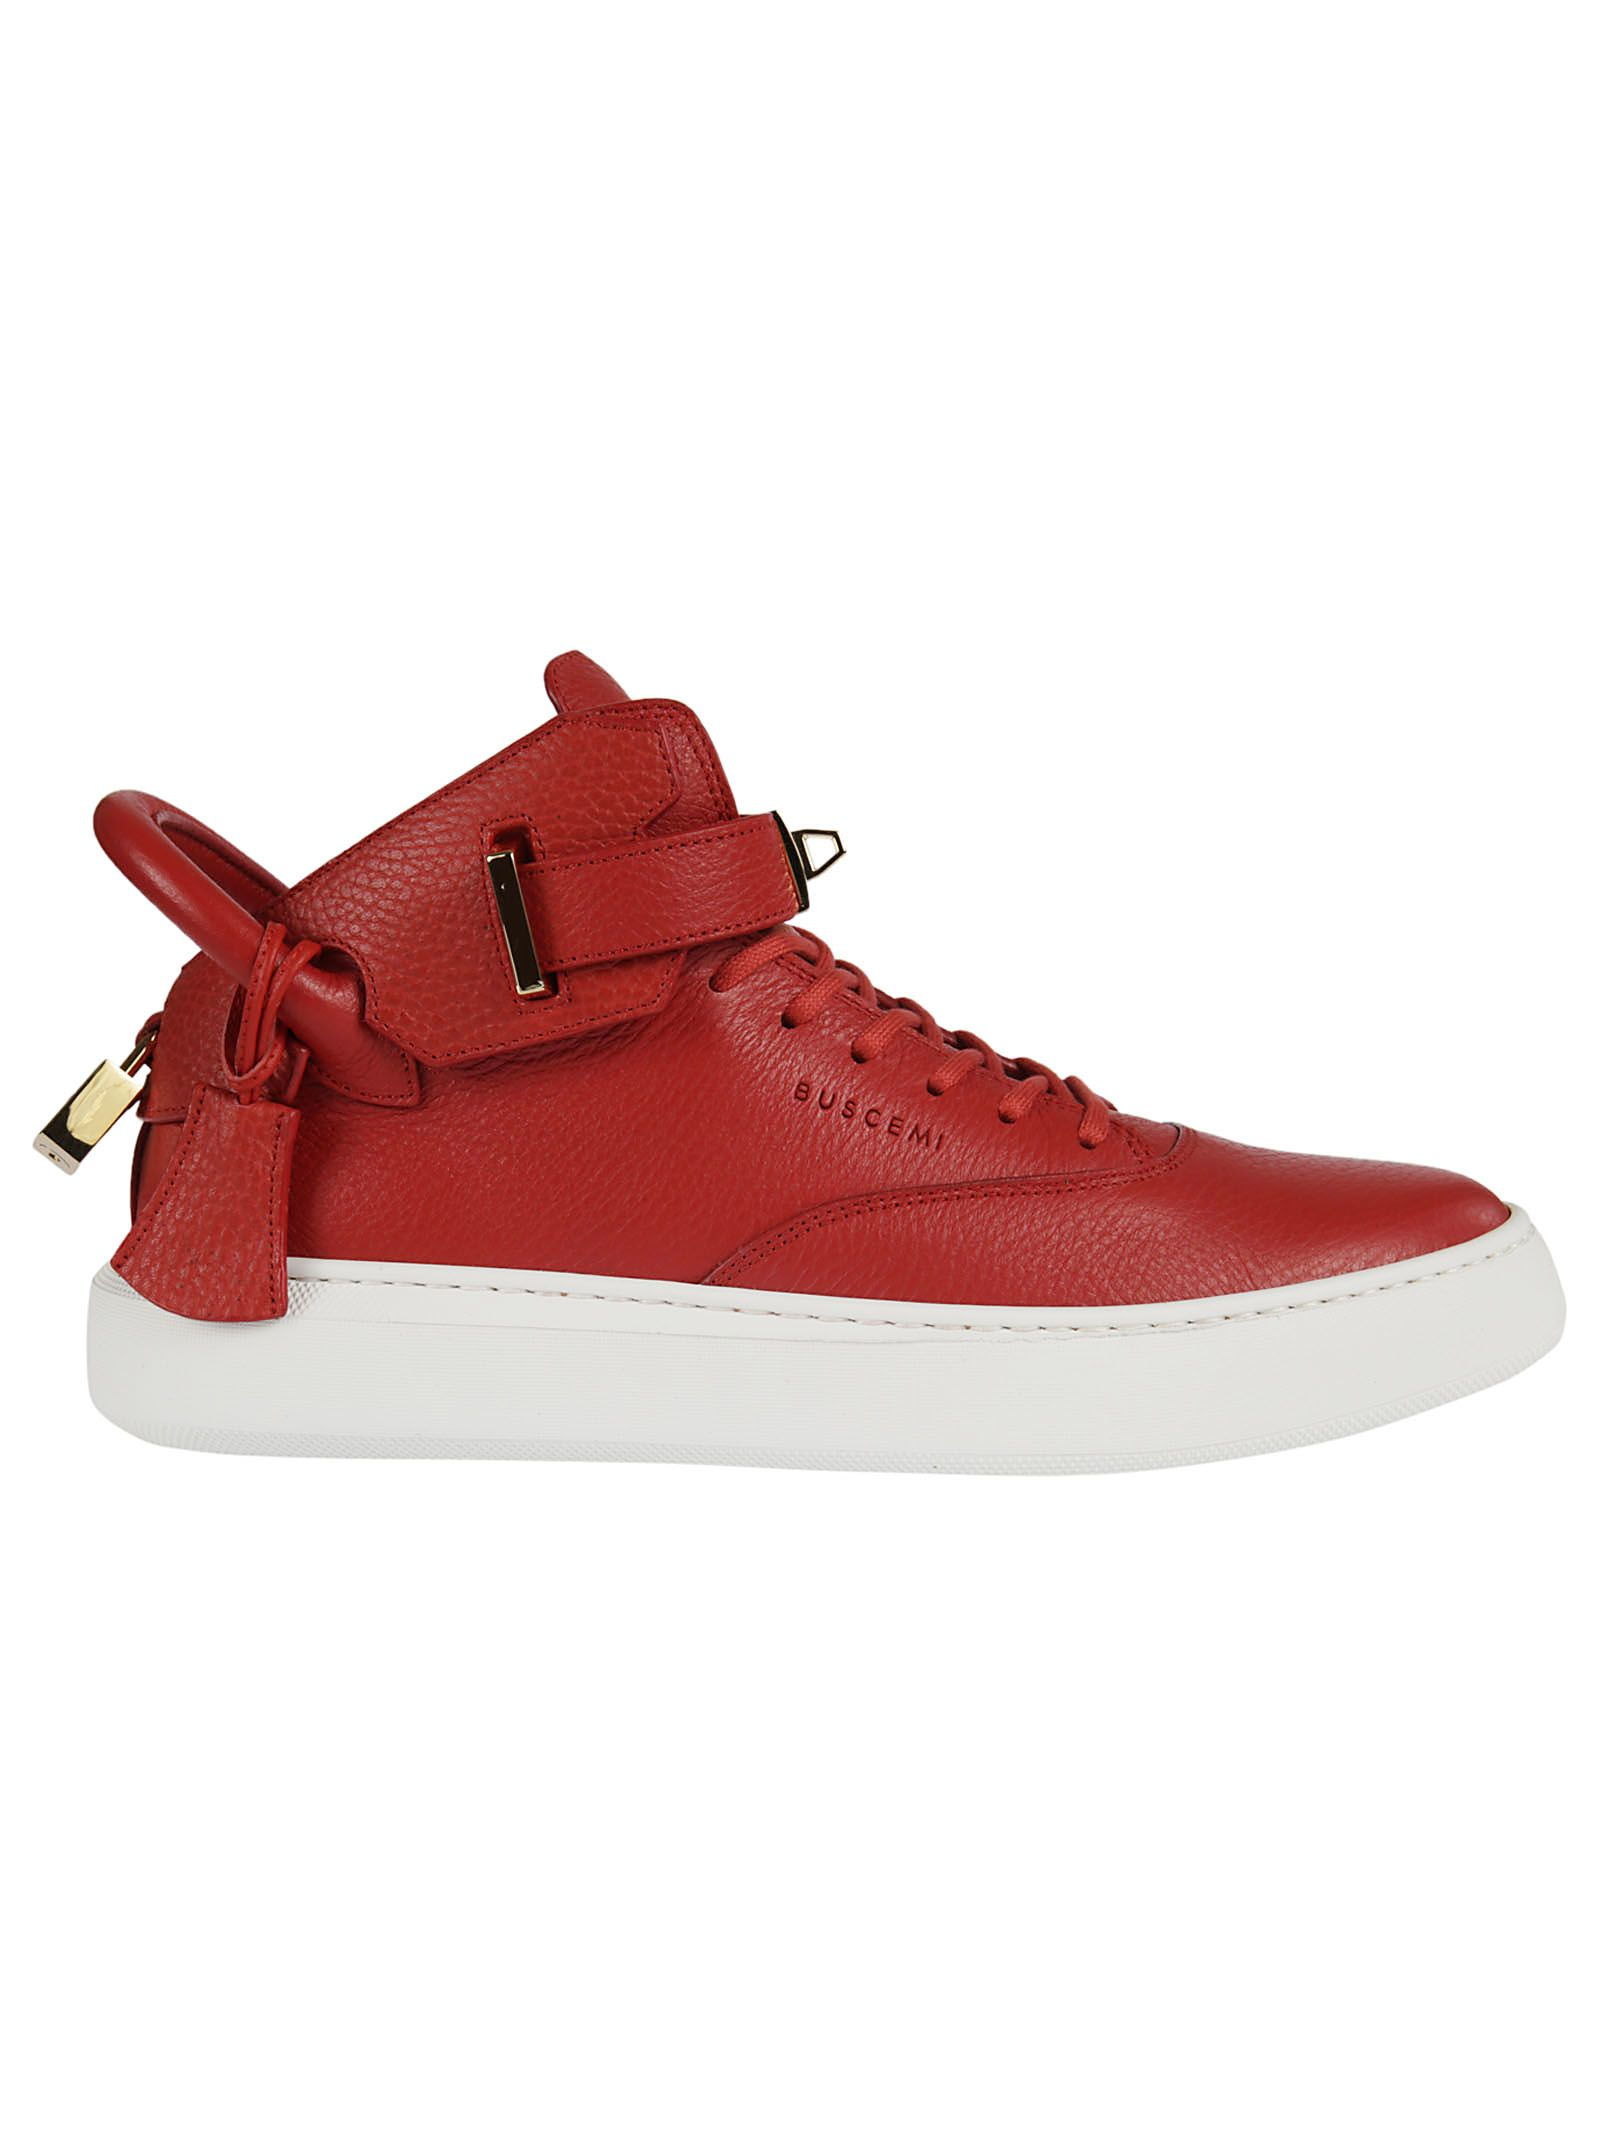 Buscemi Ankle Strap Hi-top Sneakers